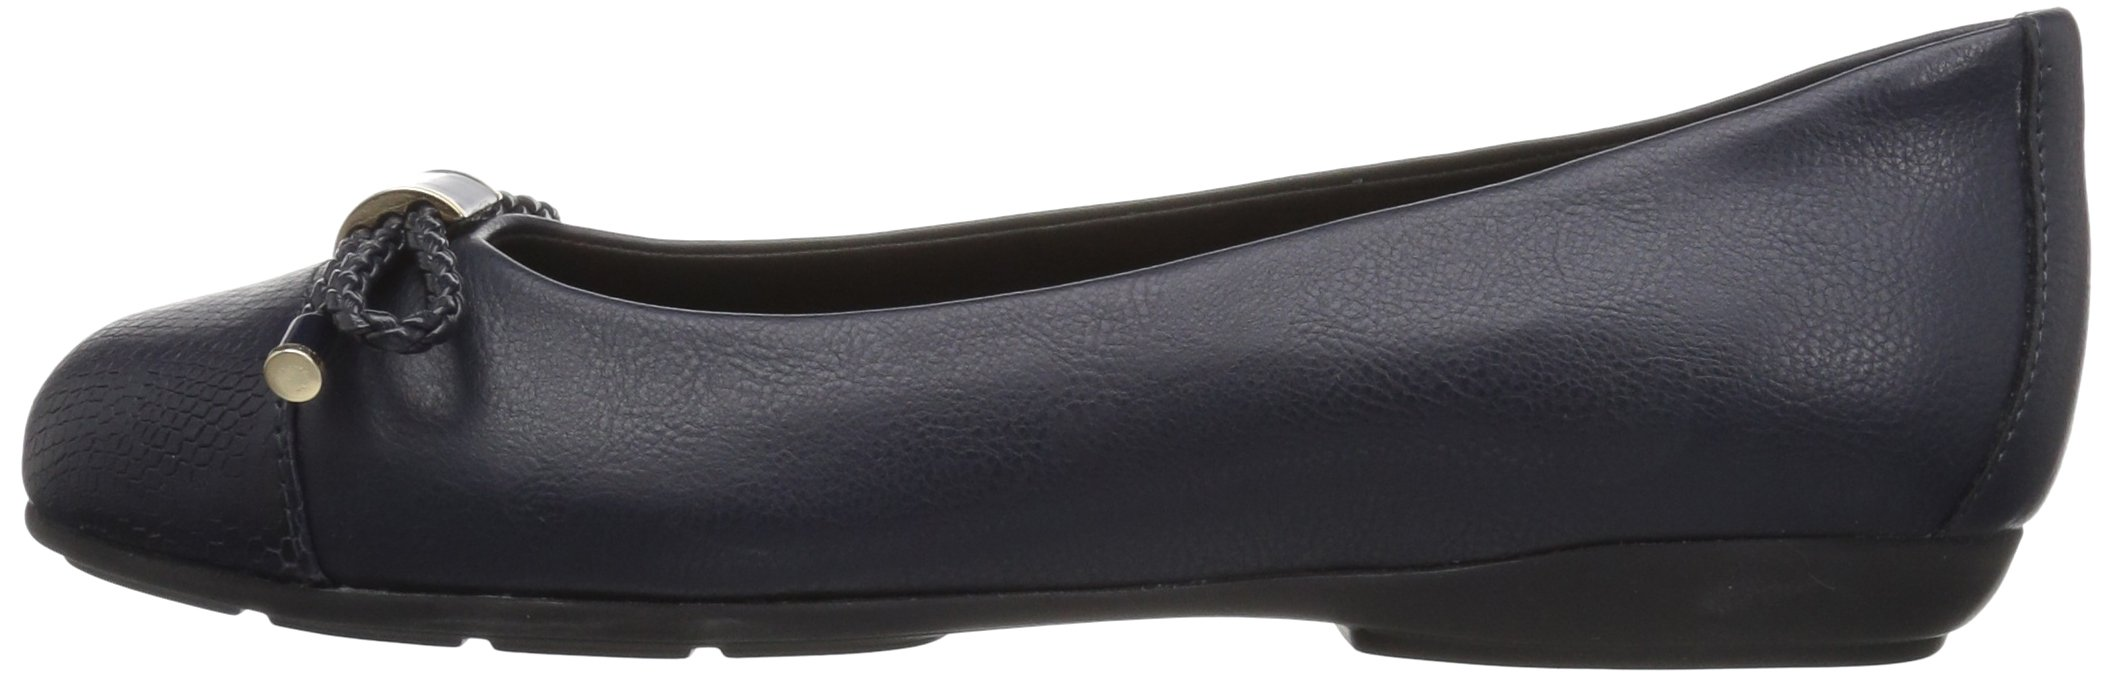 4d3cea71cc Geox Women's Annytah 6 Ballet Round Toe Flats with Bow-Arch Support ...